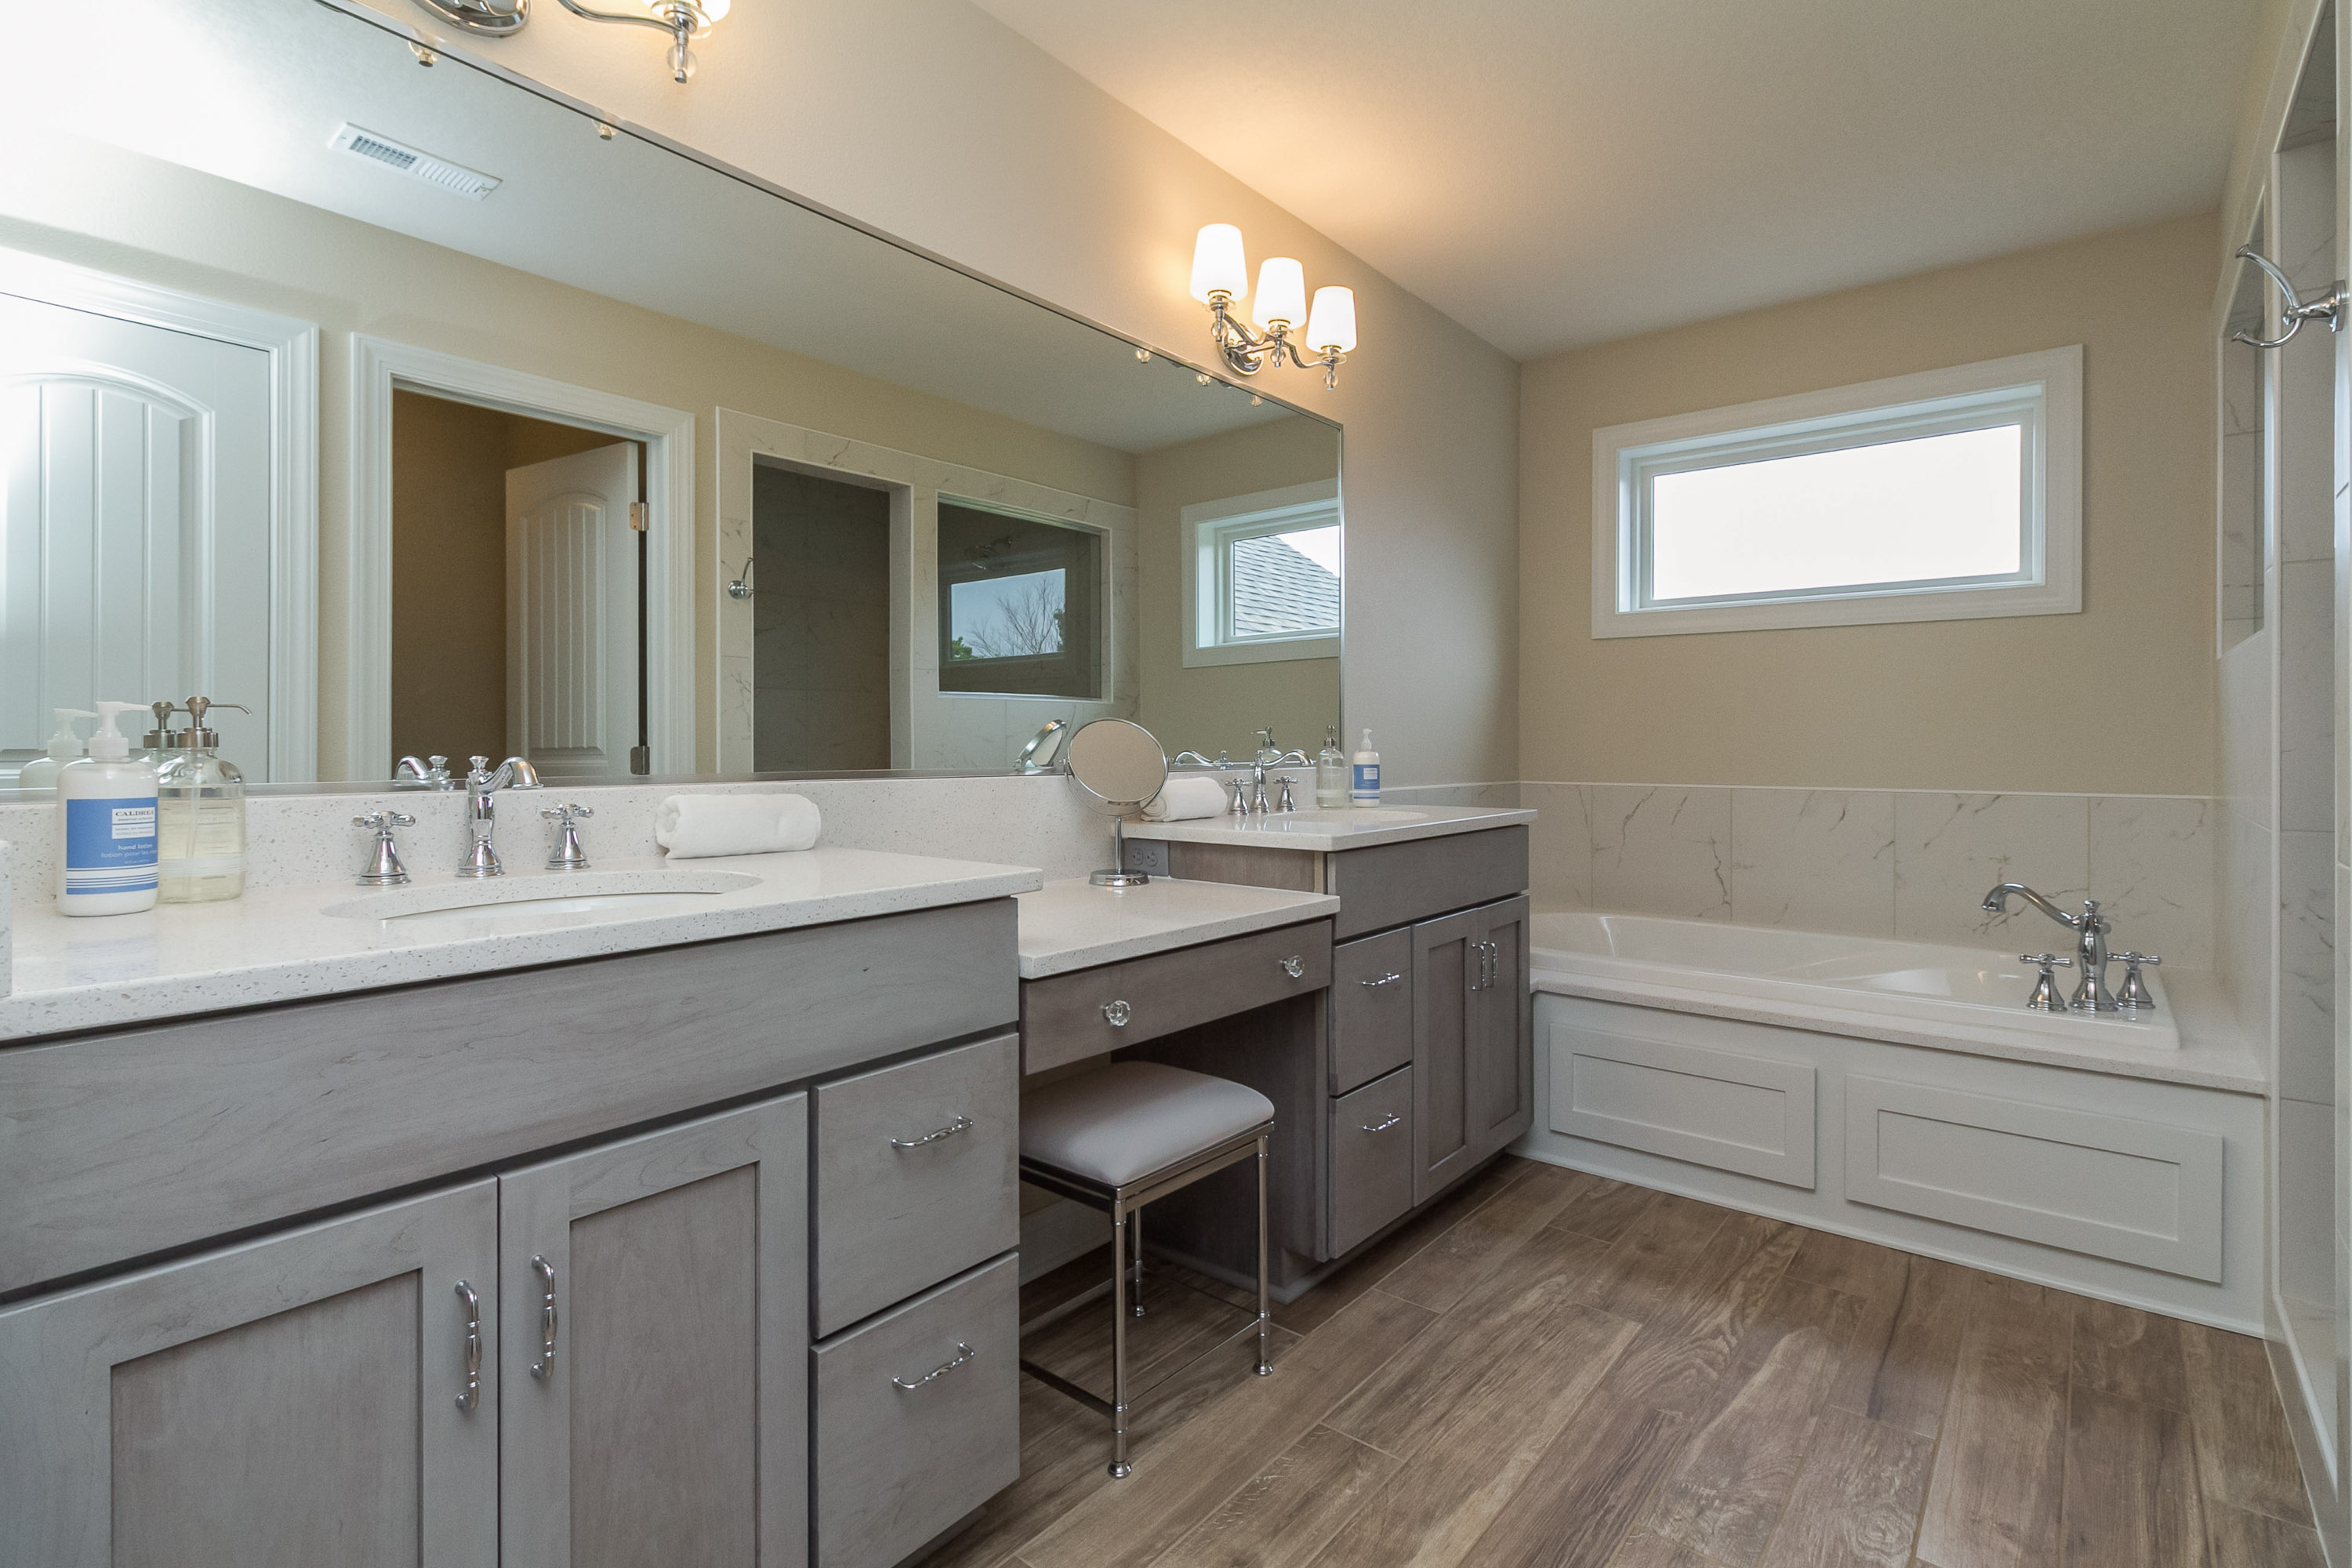 Master Bath with Wood Floor Tile and Makeup Vanity